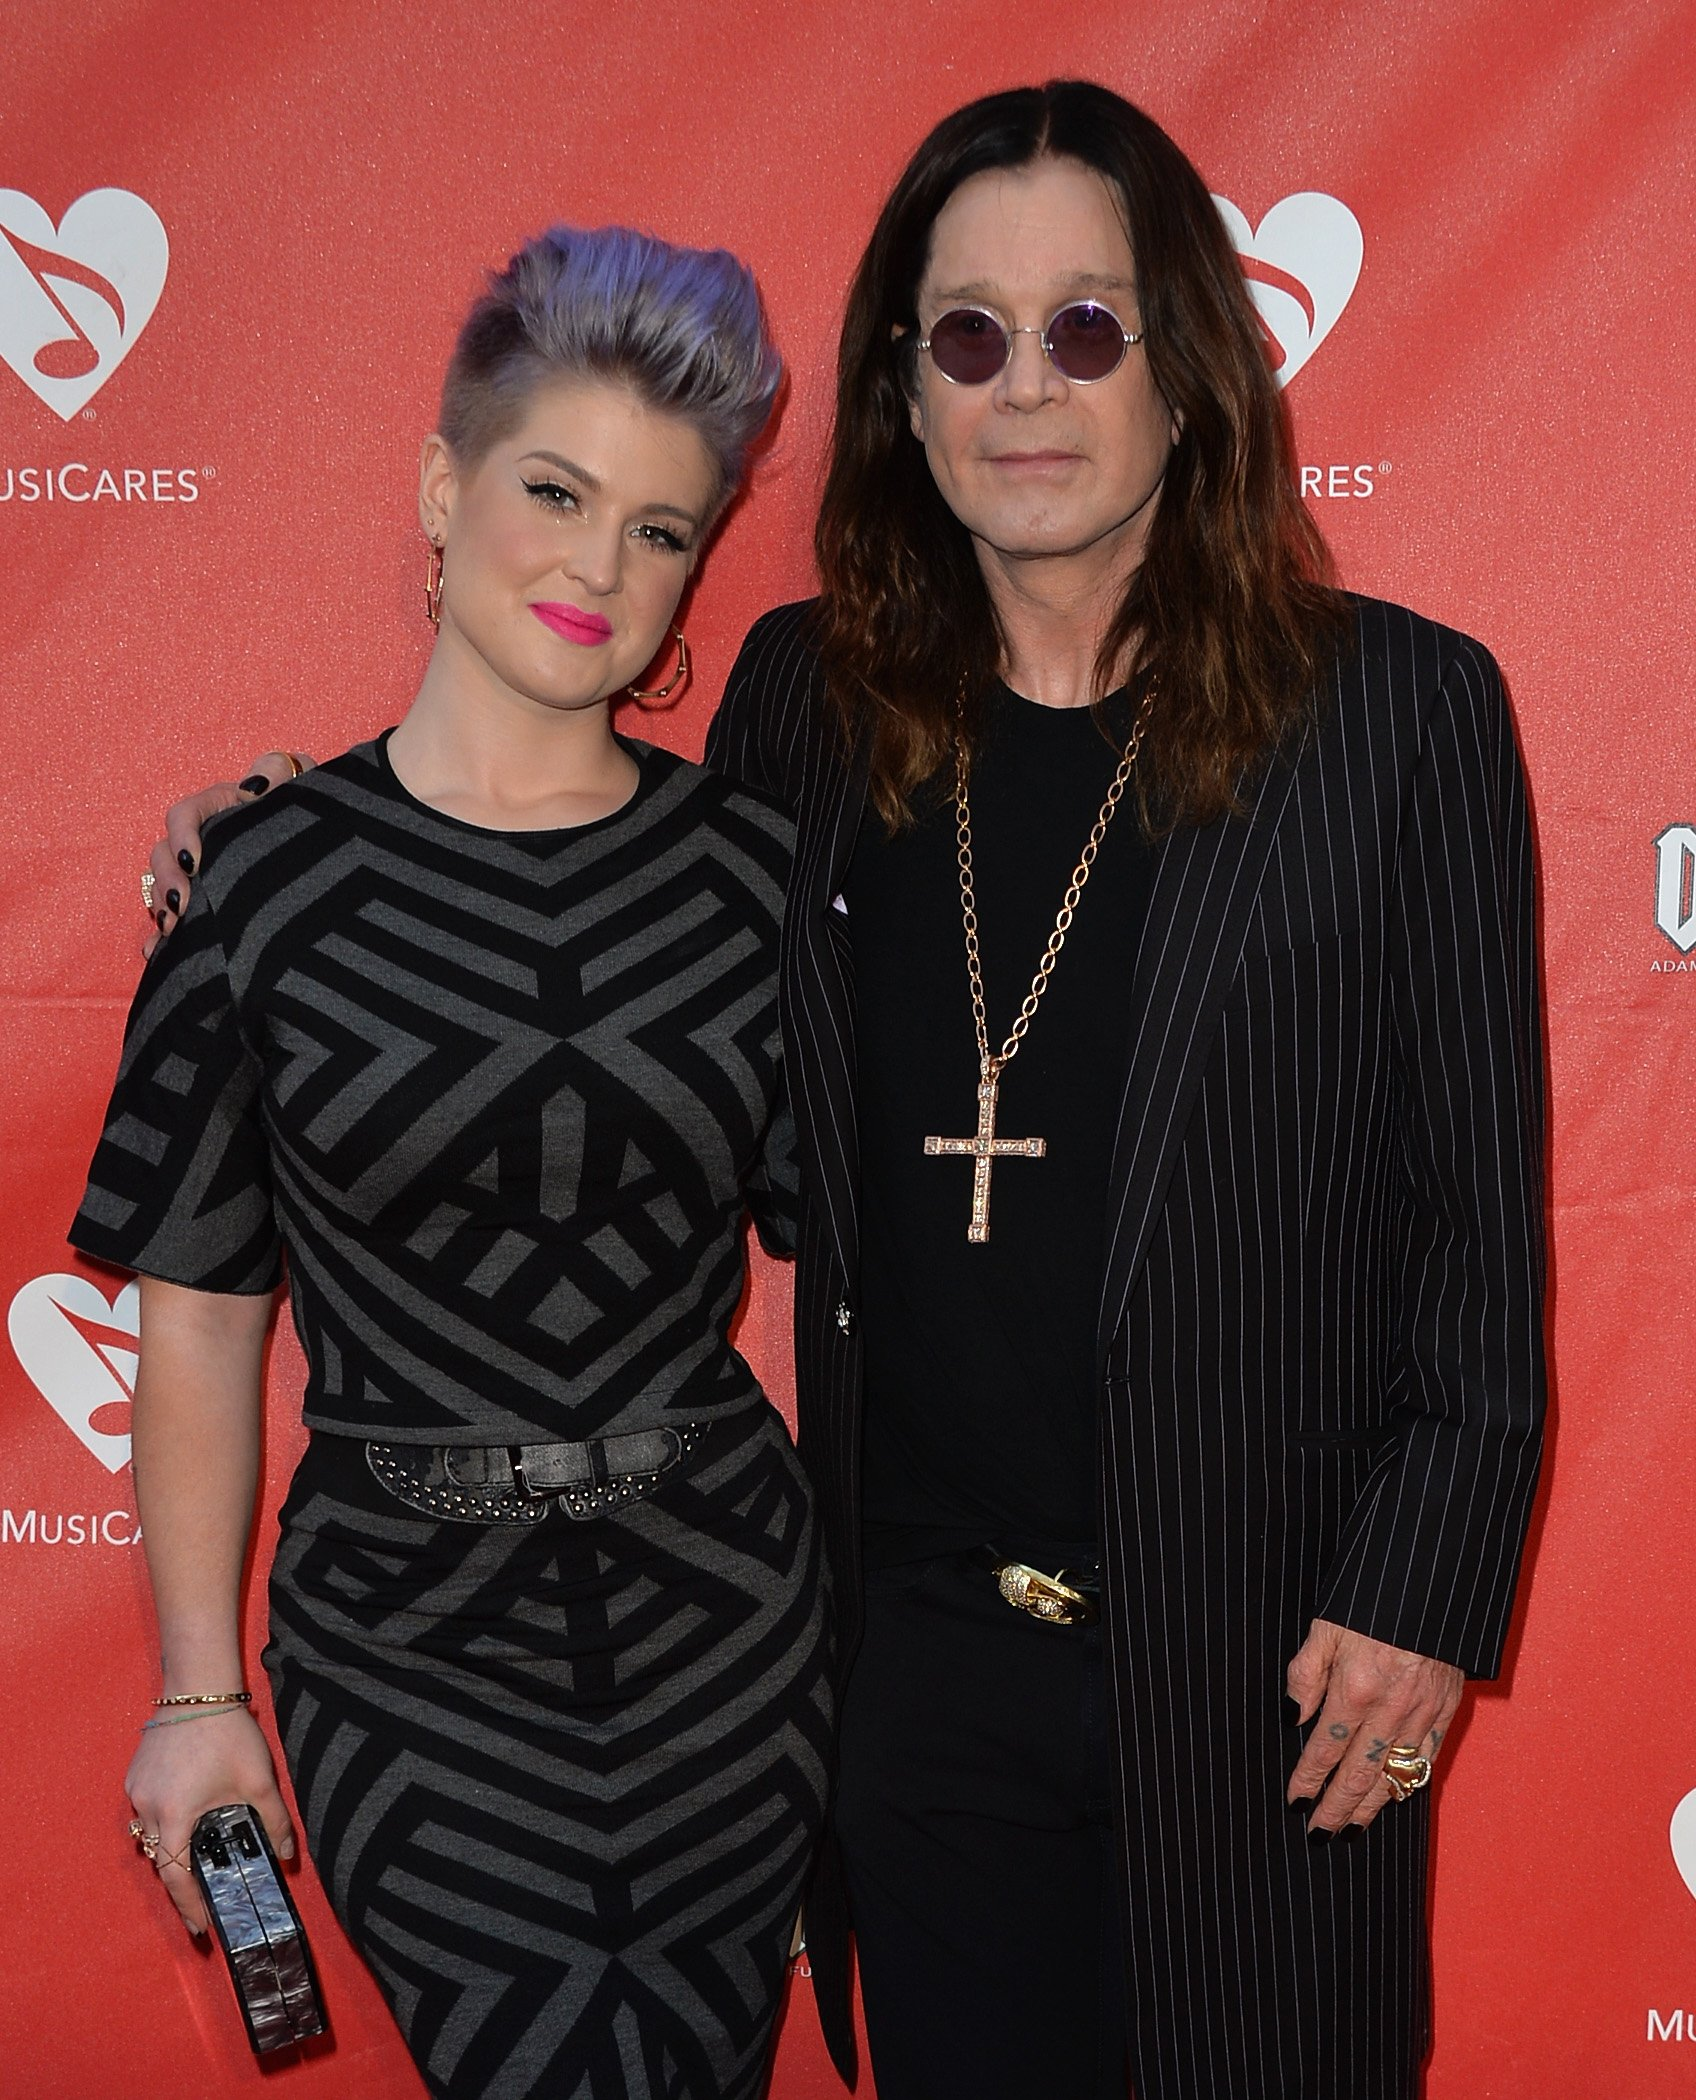 Image Credit: Getty Images/Frazer Harrison | Kelly and Ozzy at the 2014 10th Annual MusiCares MAP Fund Benefit Concert